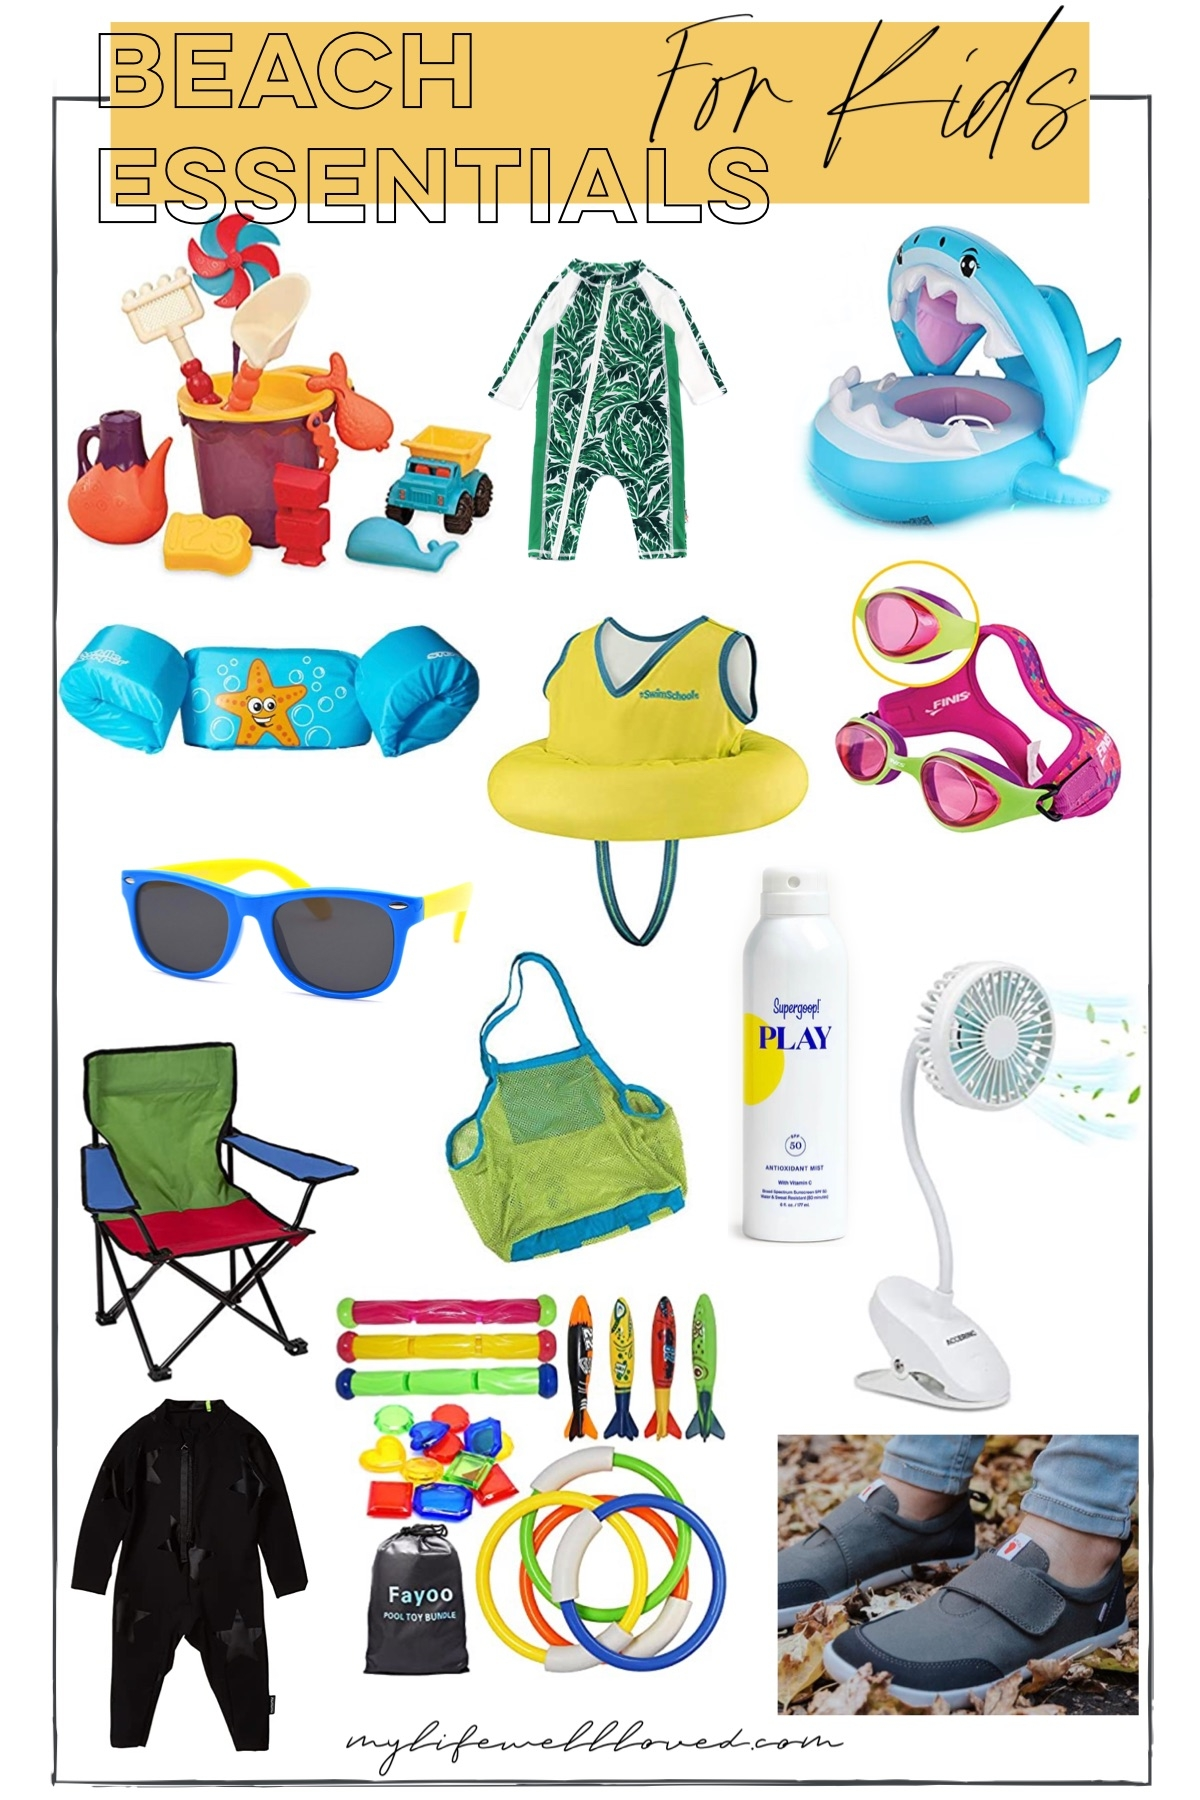 Beach Essentials by Alabama Family + Lifestyle blogger, Heather Brown // My Life Well Loved